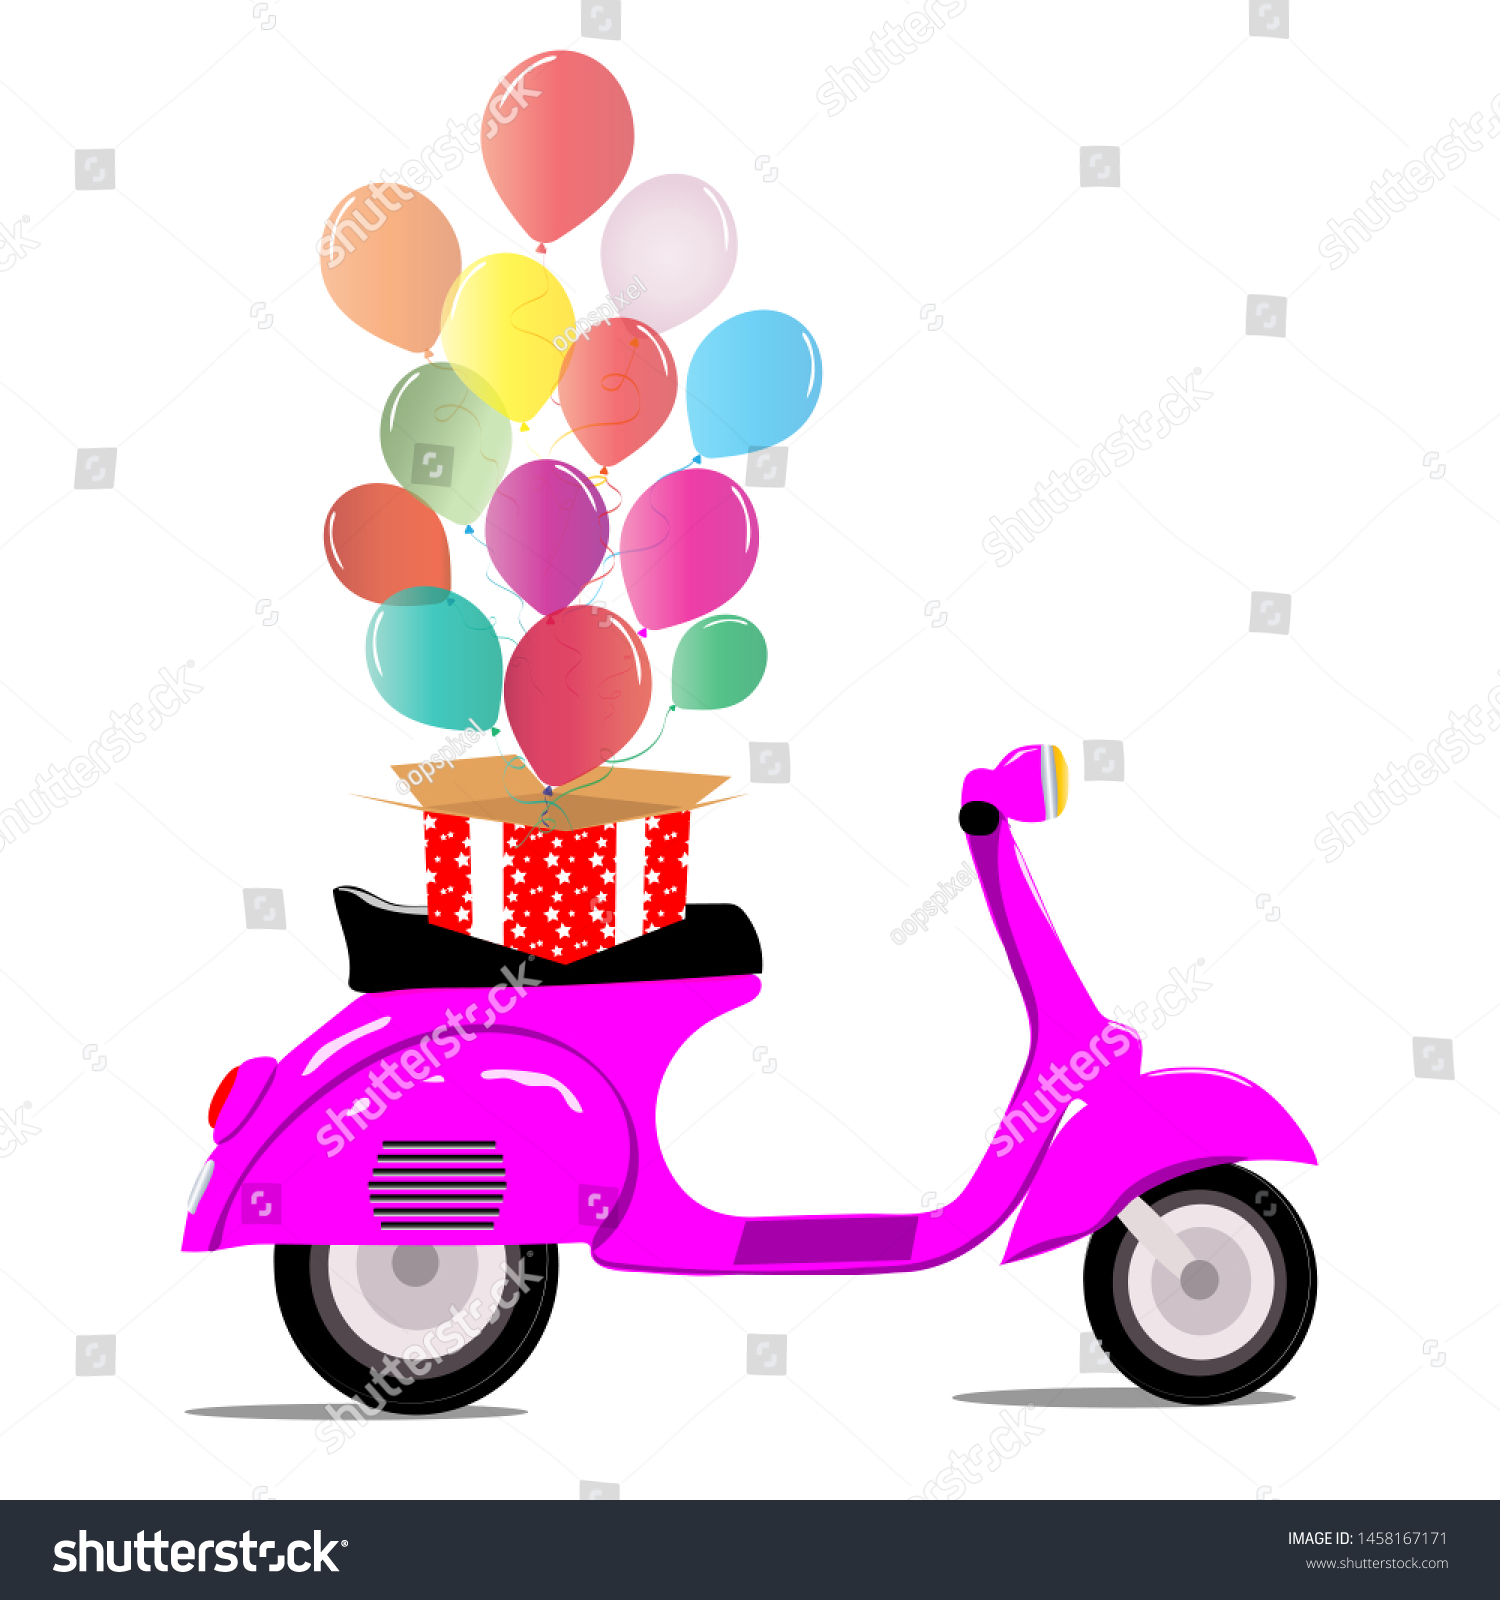 balloons fly out box purple scooter stock vector royalty free 1458167171 shutterstock